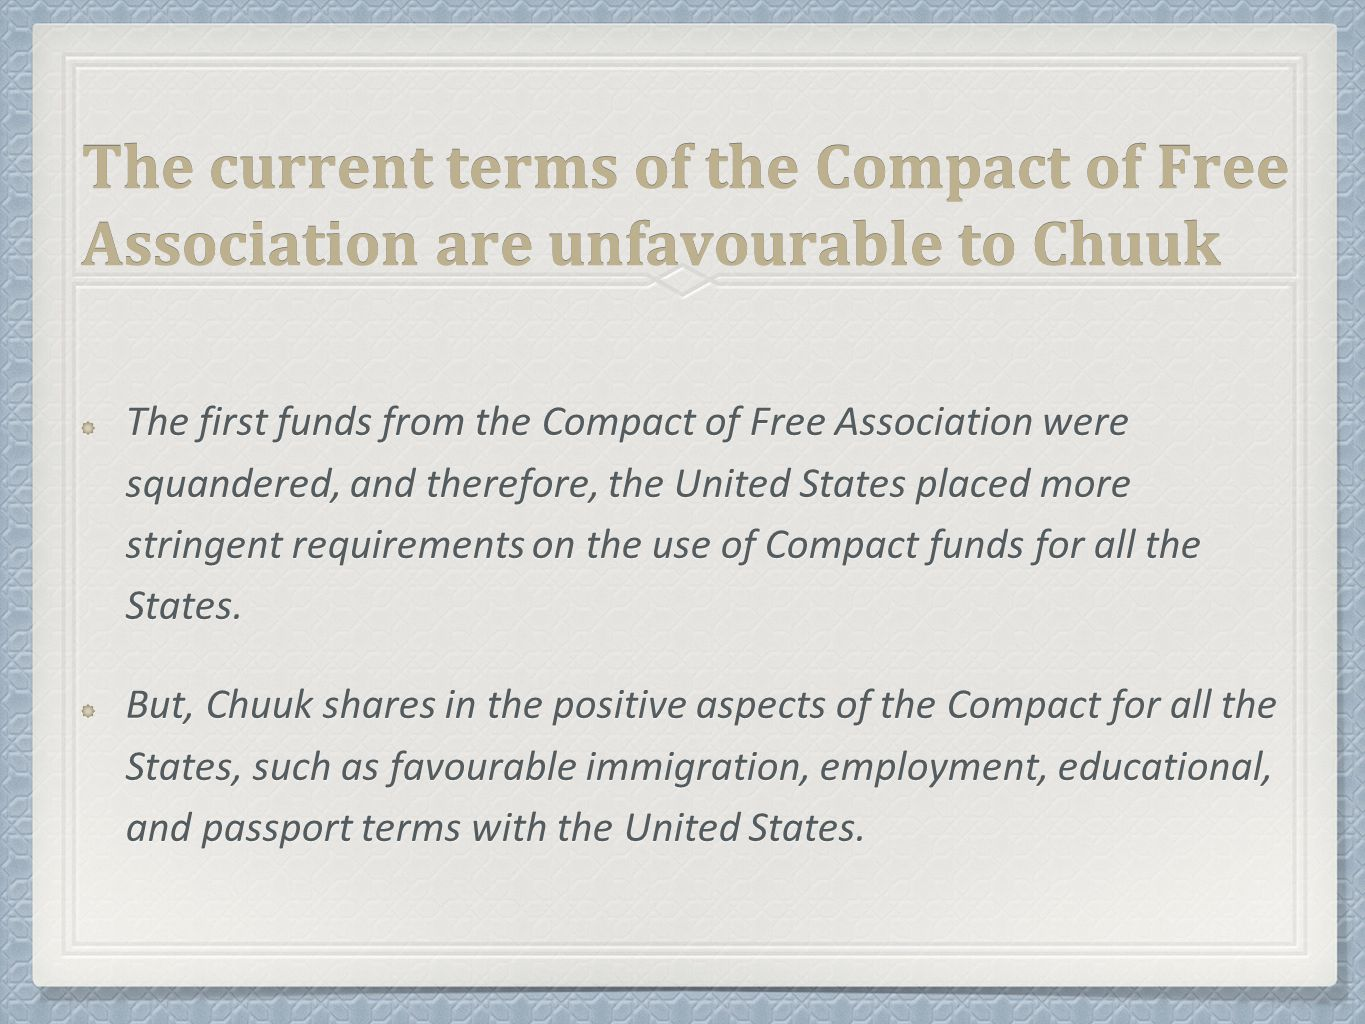 The current terms of the Compact of Free Association are unfavourable to Chuuk The first funds from the Compact of Free Association were squandered, and therefore, the United States placed more stringent requirements on the use of Compact funds for all the States.